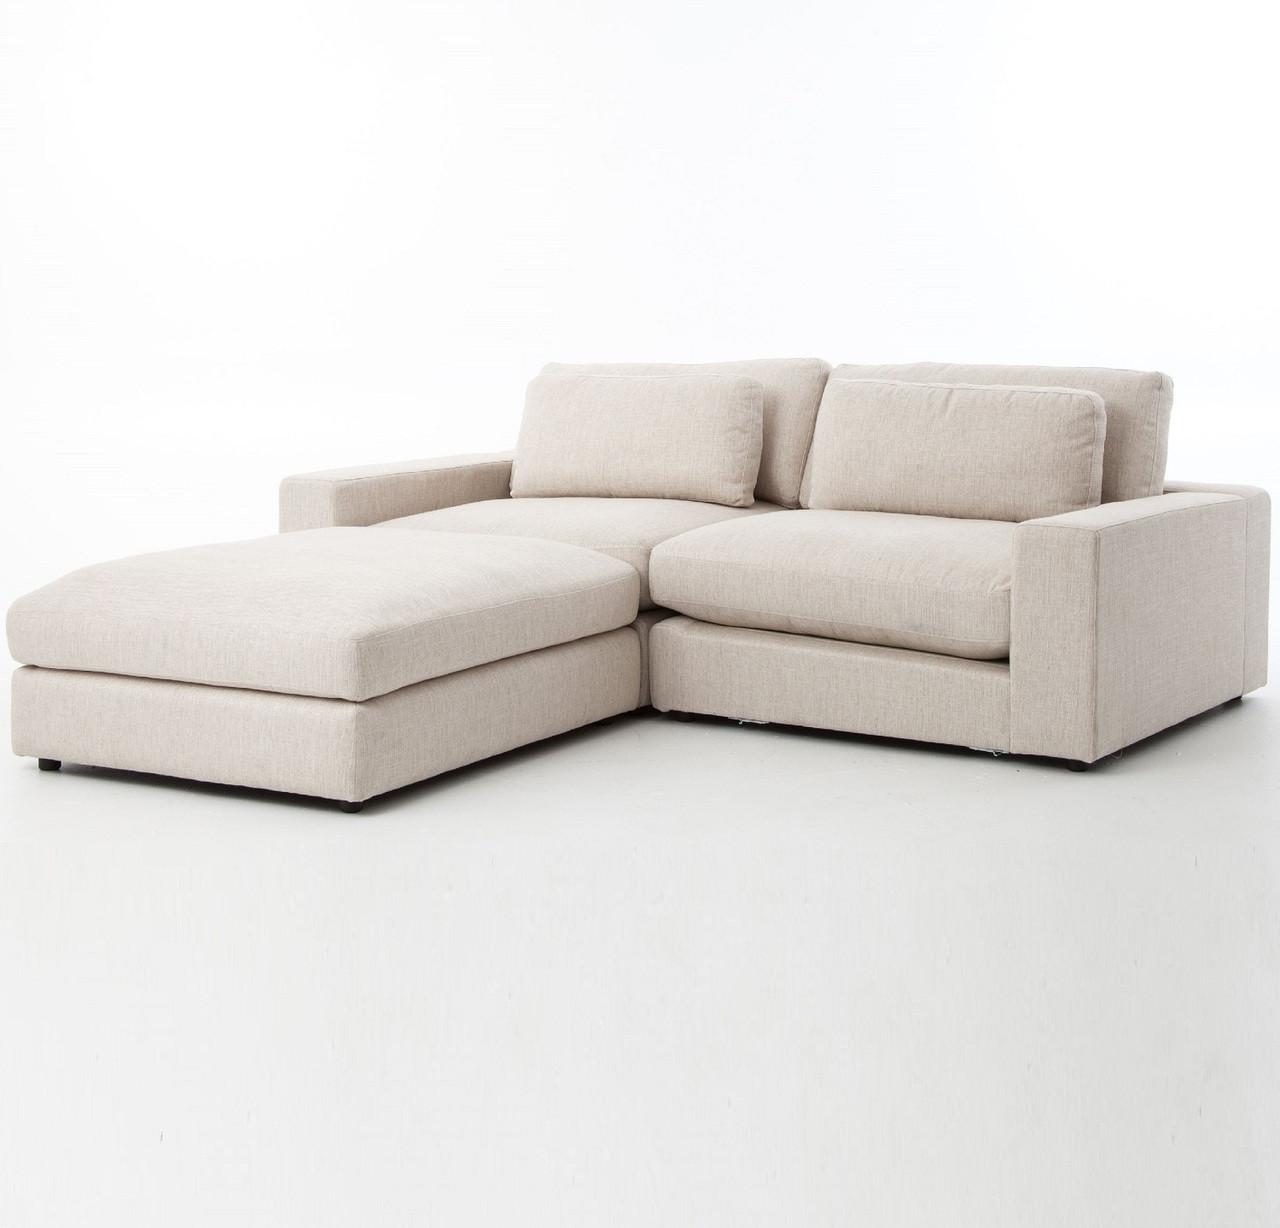 Incroyable Bloor Beige Contemporary 3 Piece Small Sectional Sofa